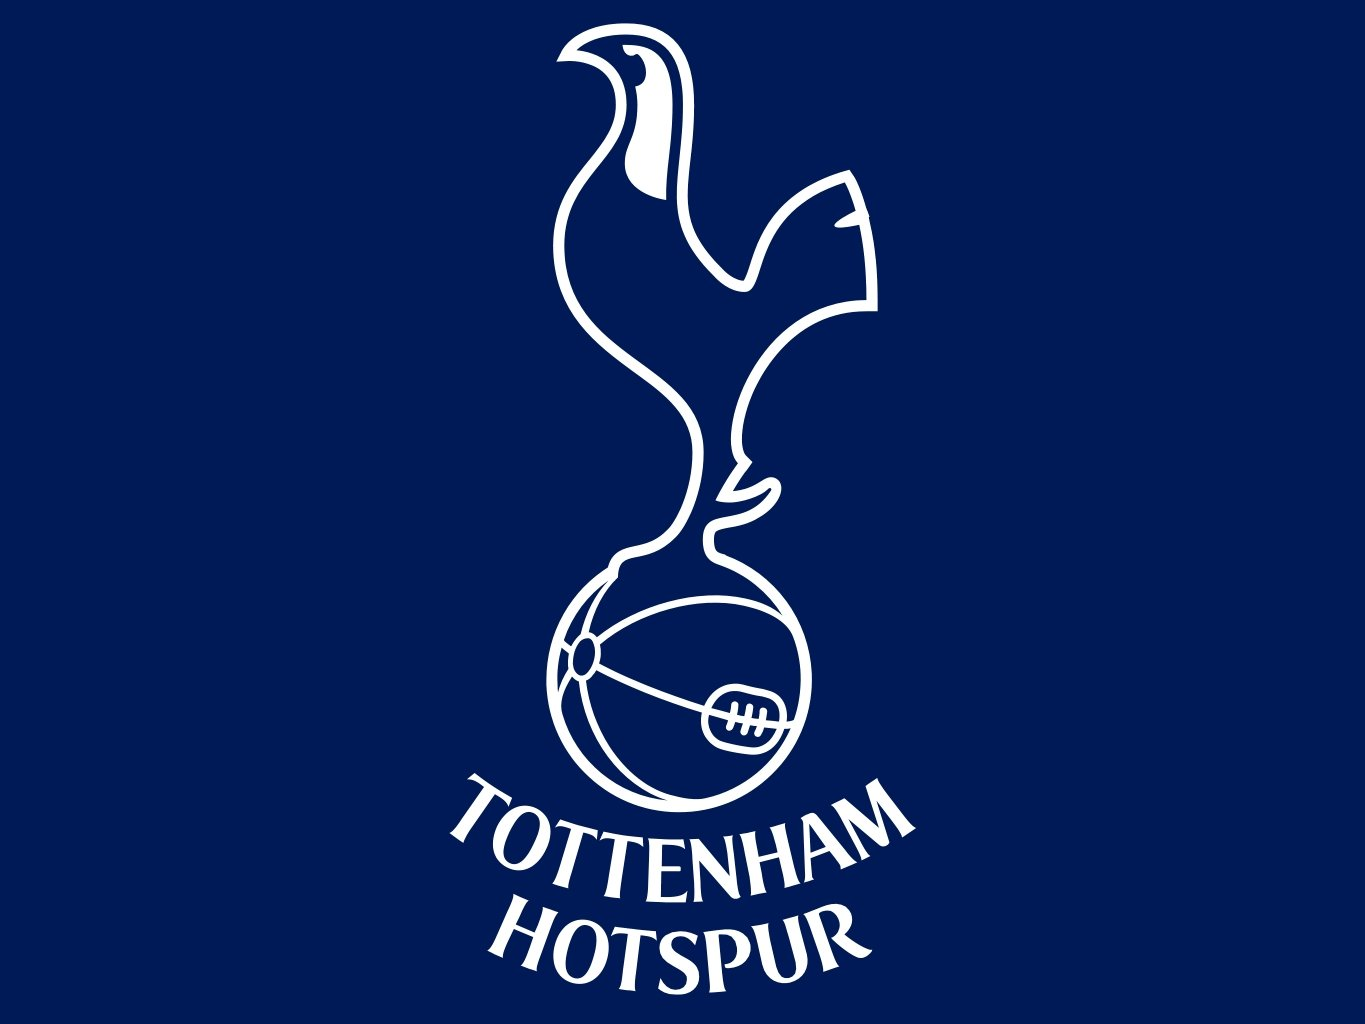 Free Download England Football Logos Tottenham Fc Logo Pictures 1365x1024 For Your Desktop Mobile Tablet Explore 77 Free Spurs Wallpaper Nba Spurs Wallpaper Spurs Logo Wallpaper San Antonio Spurs Free Wallpaper